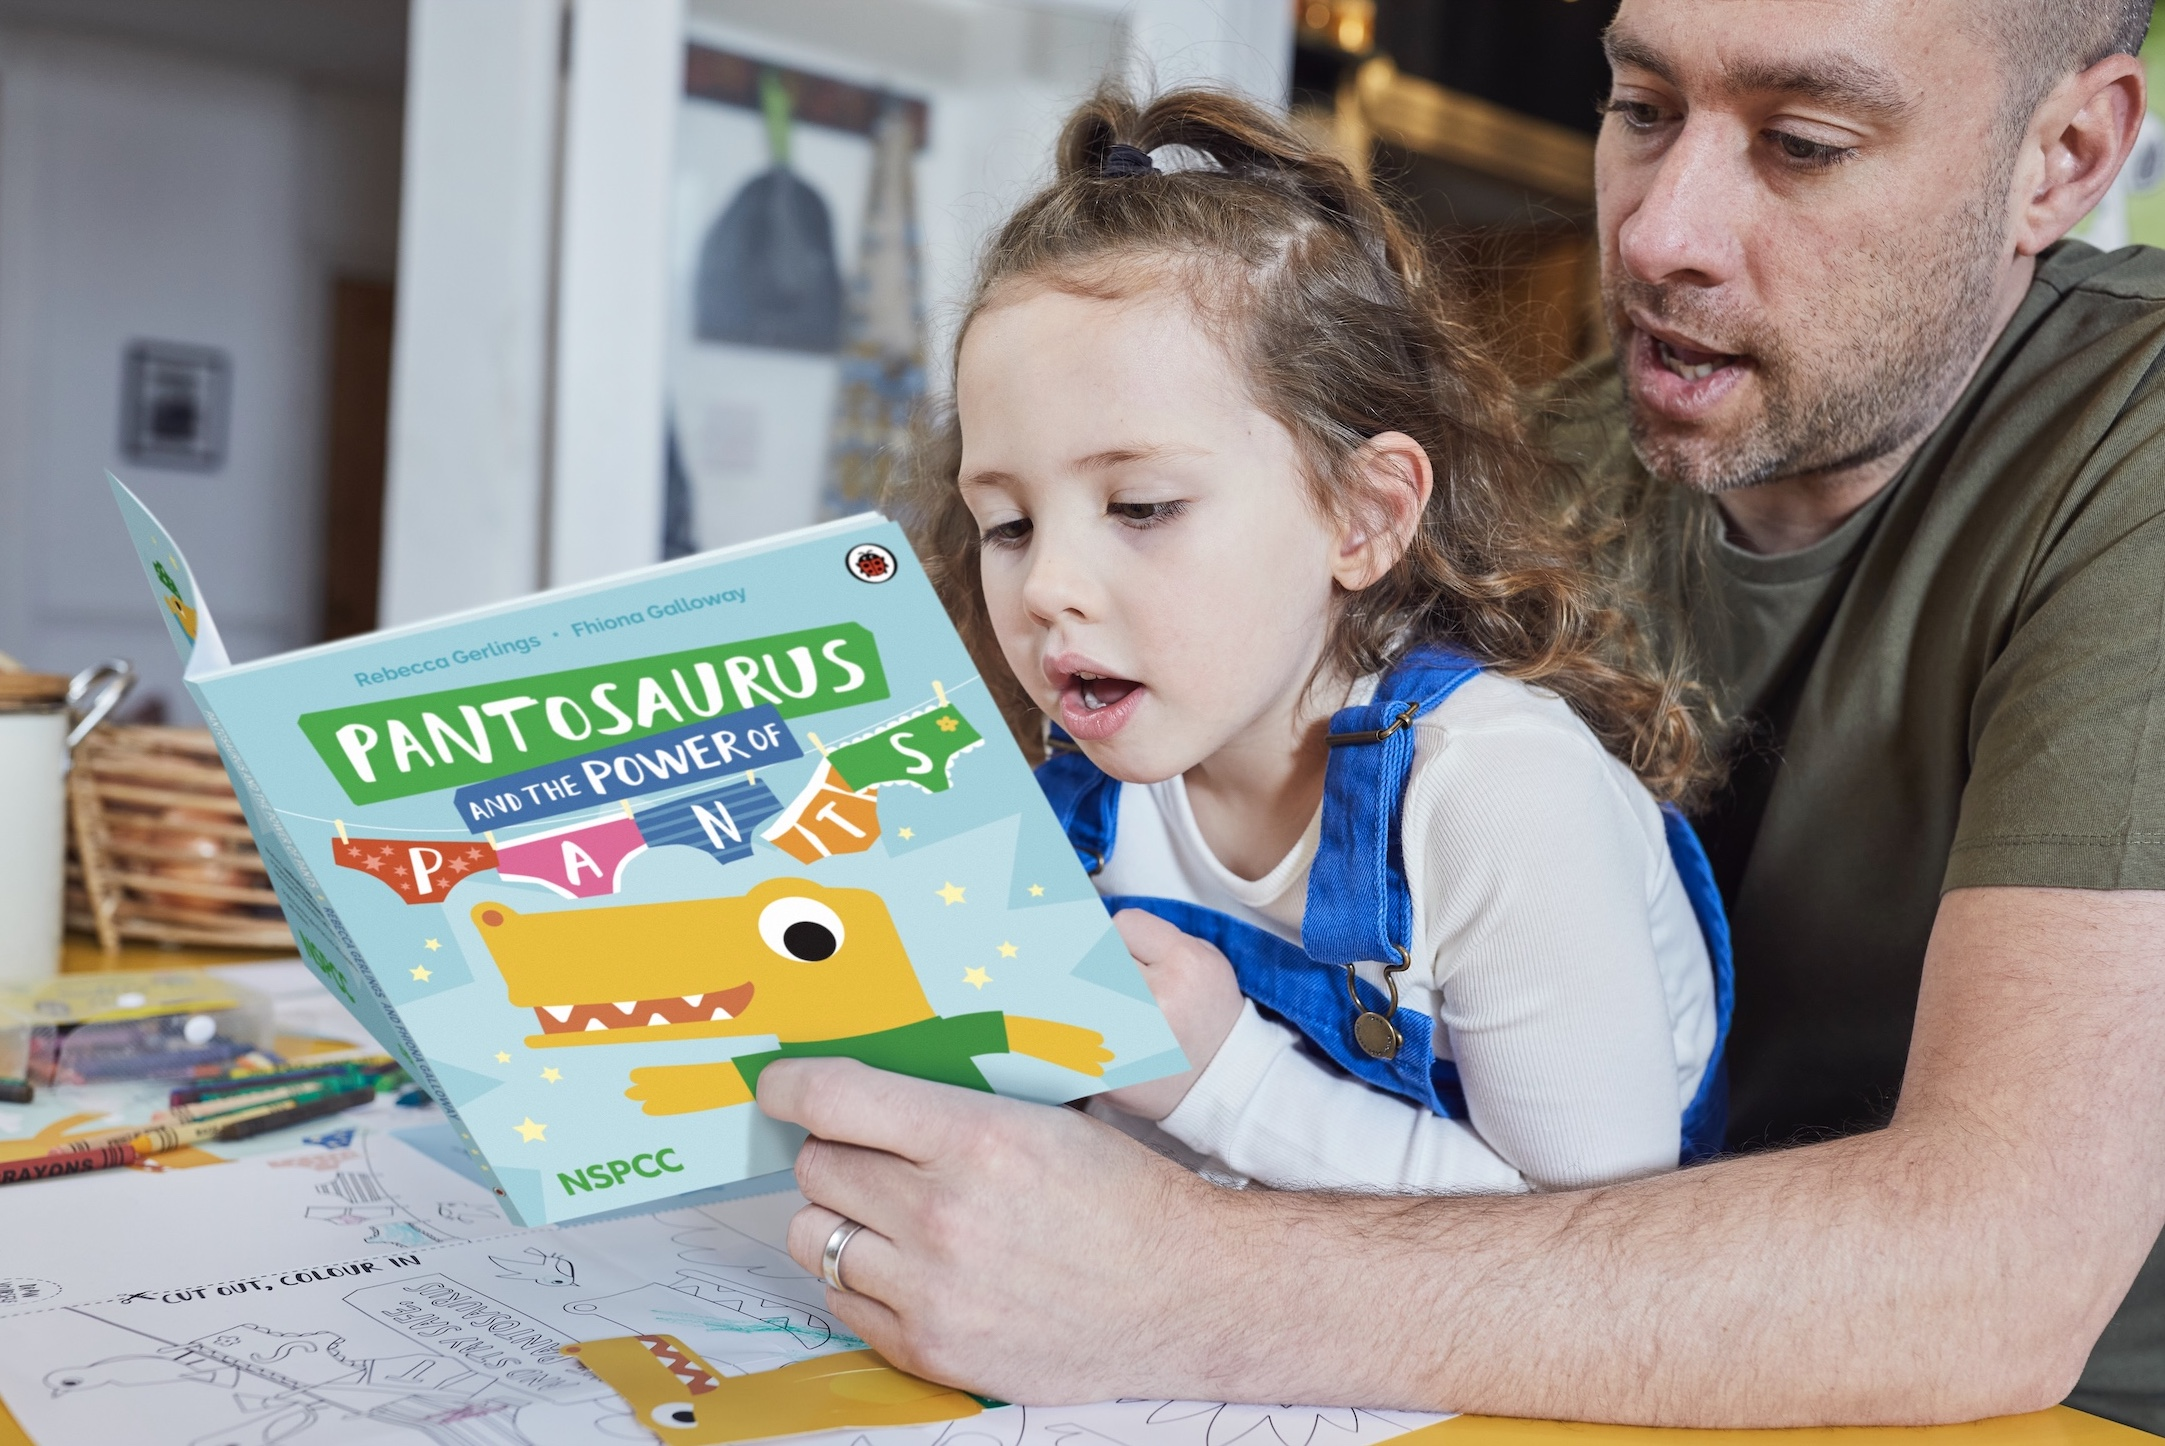 NSPCC partner with Ladybird to publish the charity's first children's book – Pantosaurus and the POWER of PANTS!